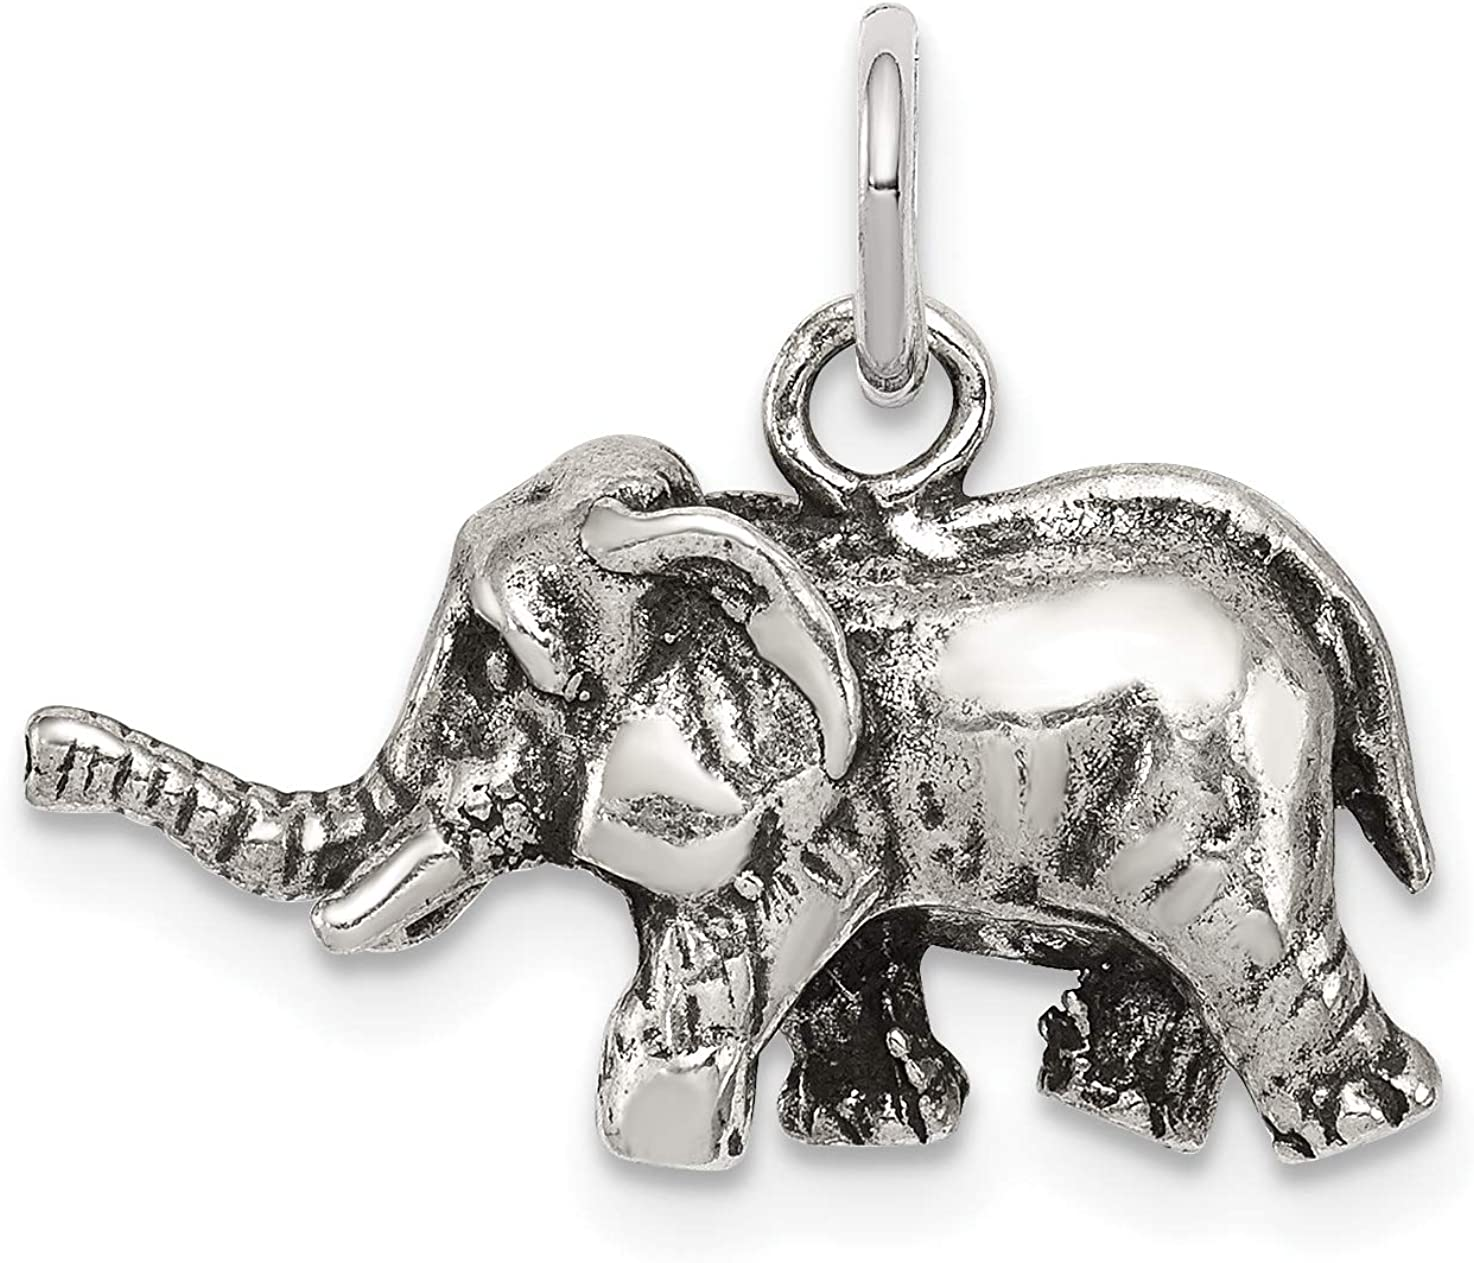 Solid 925 Sterling Silver Antiqued-Style /& Textured Elephant Pendant